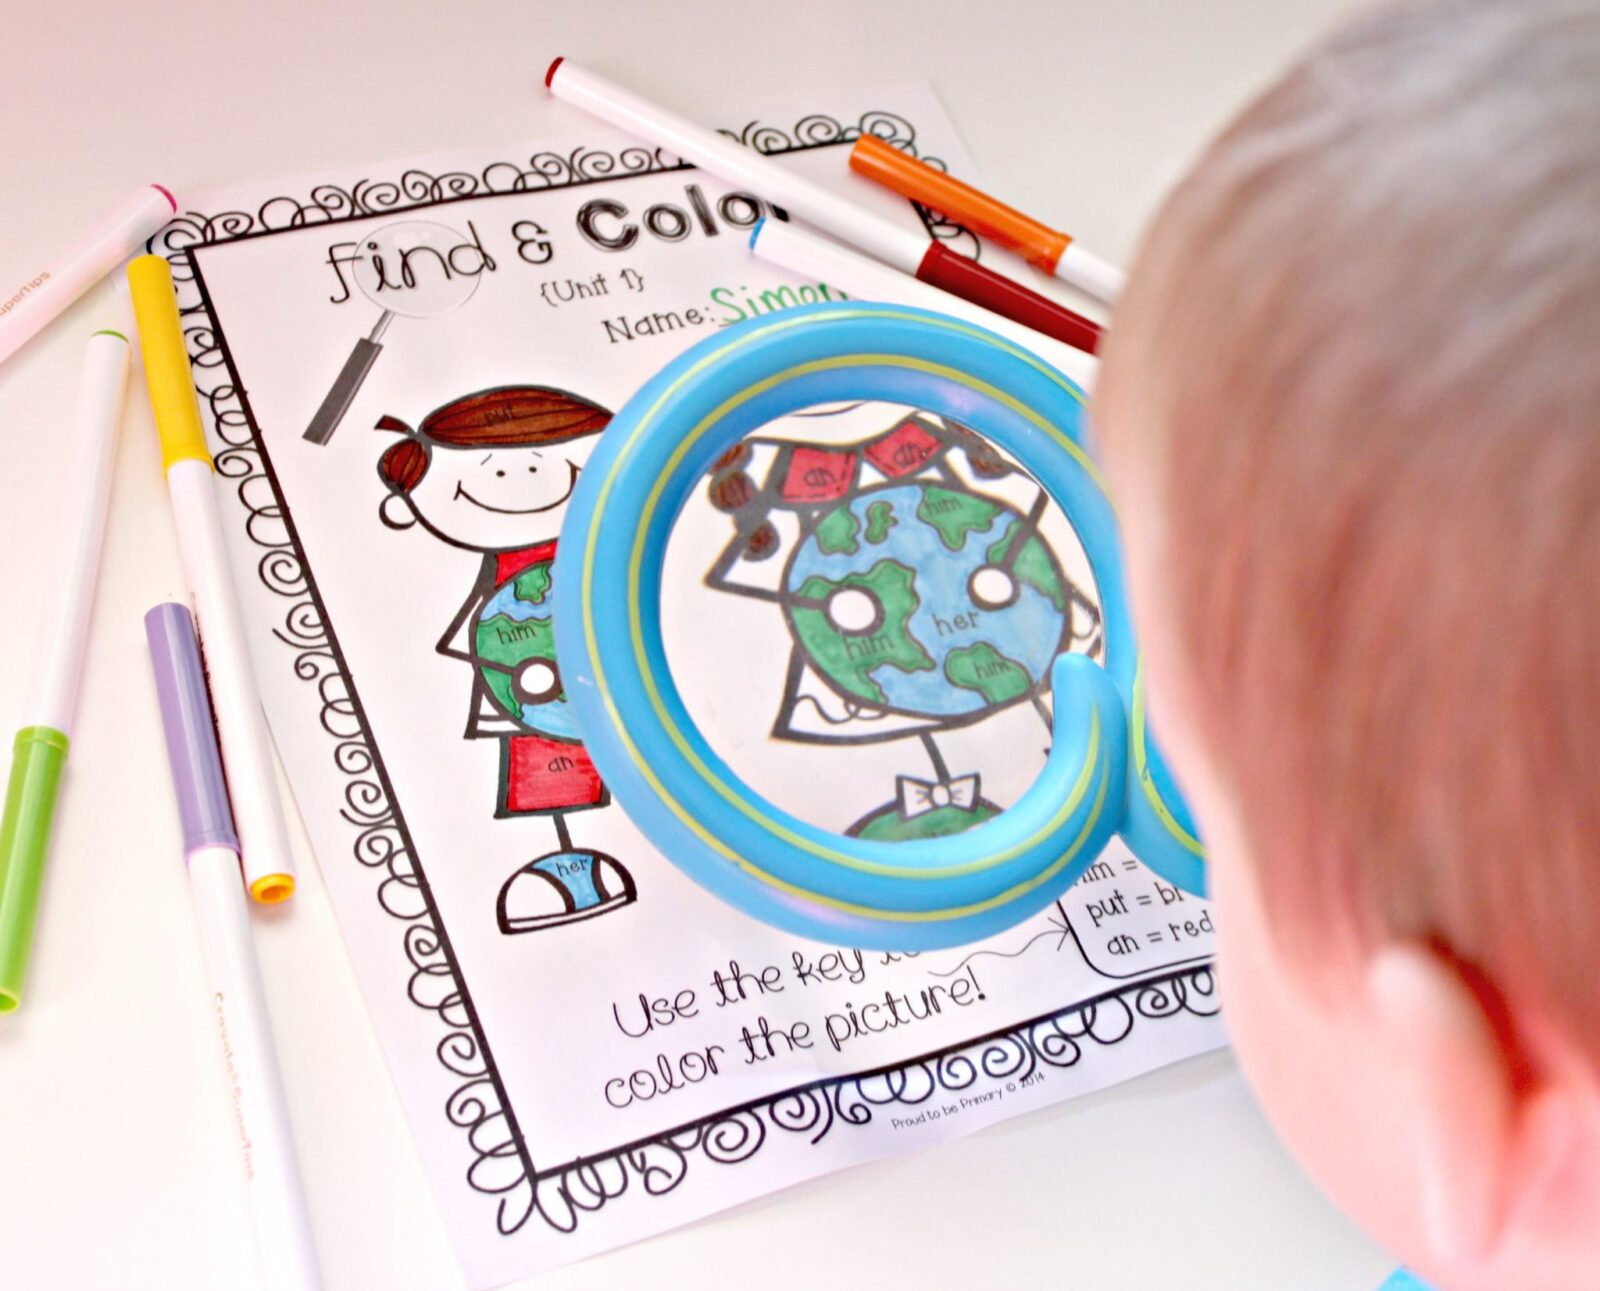 teaching sight words - find and color